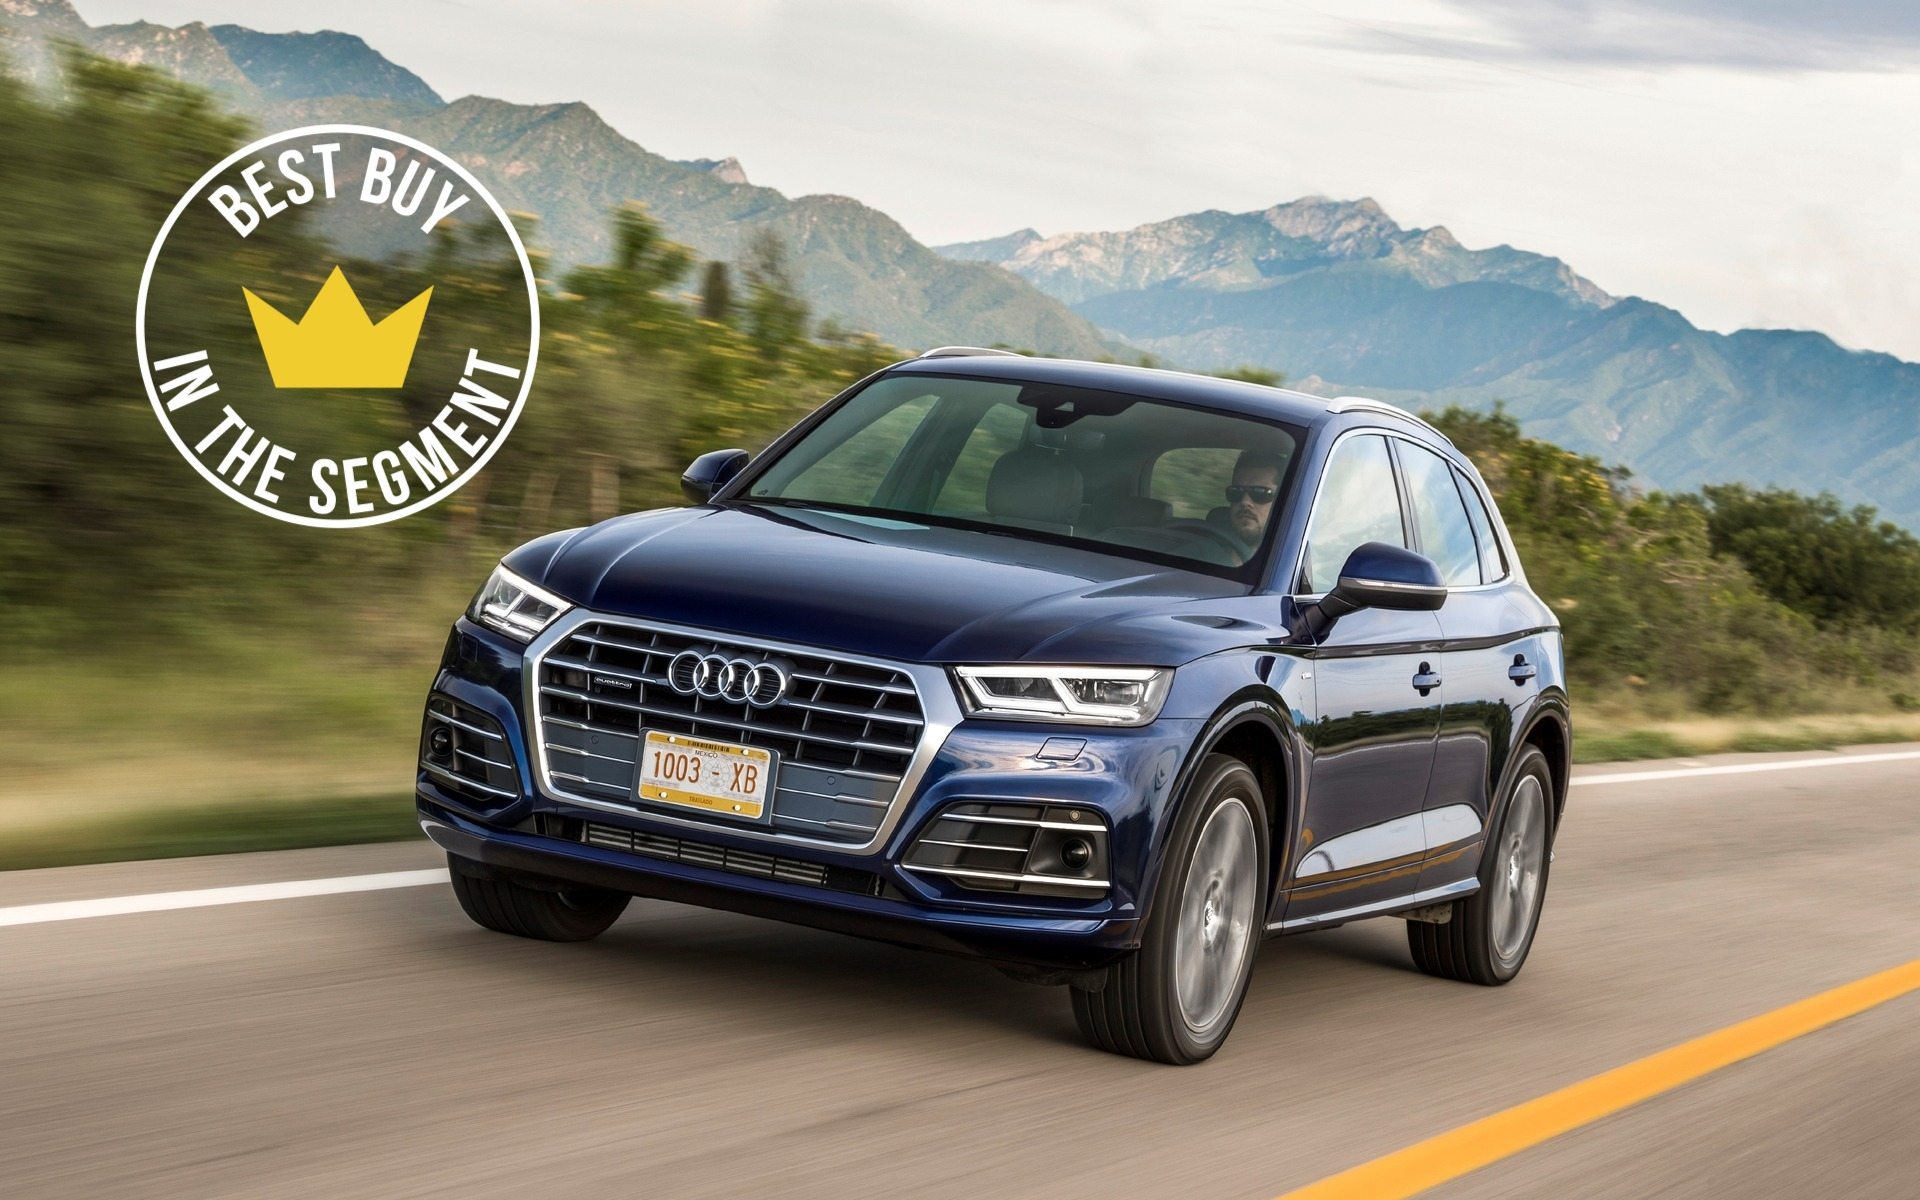 The Car Guide's 2019 Best Buys: Audi Q5 - The Car Guide